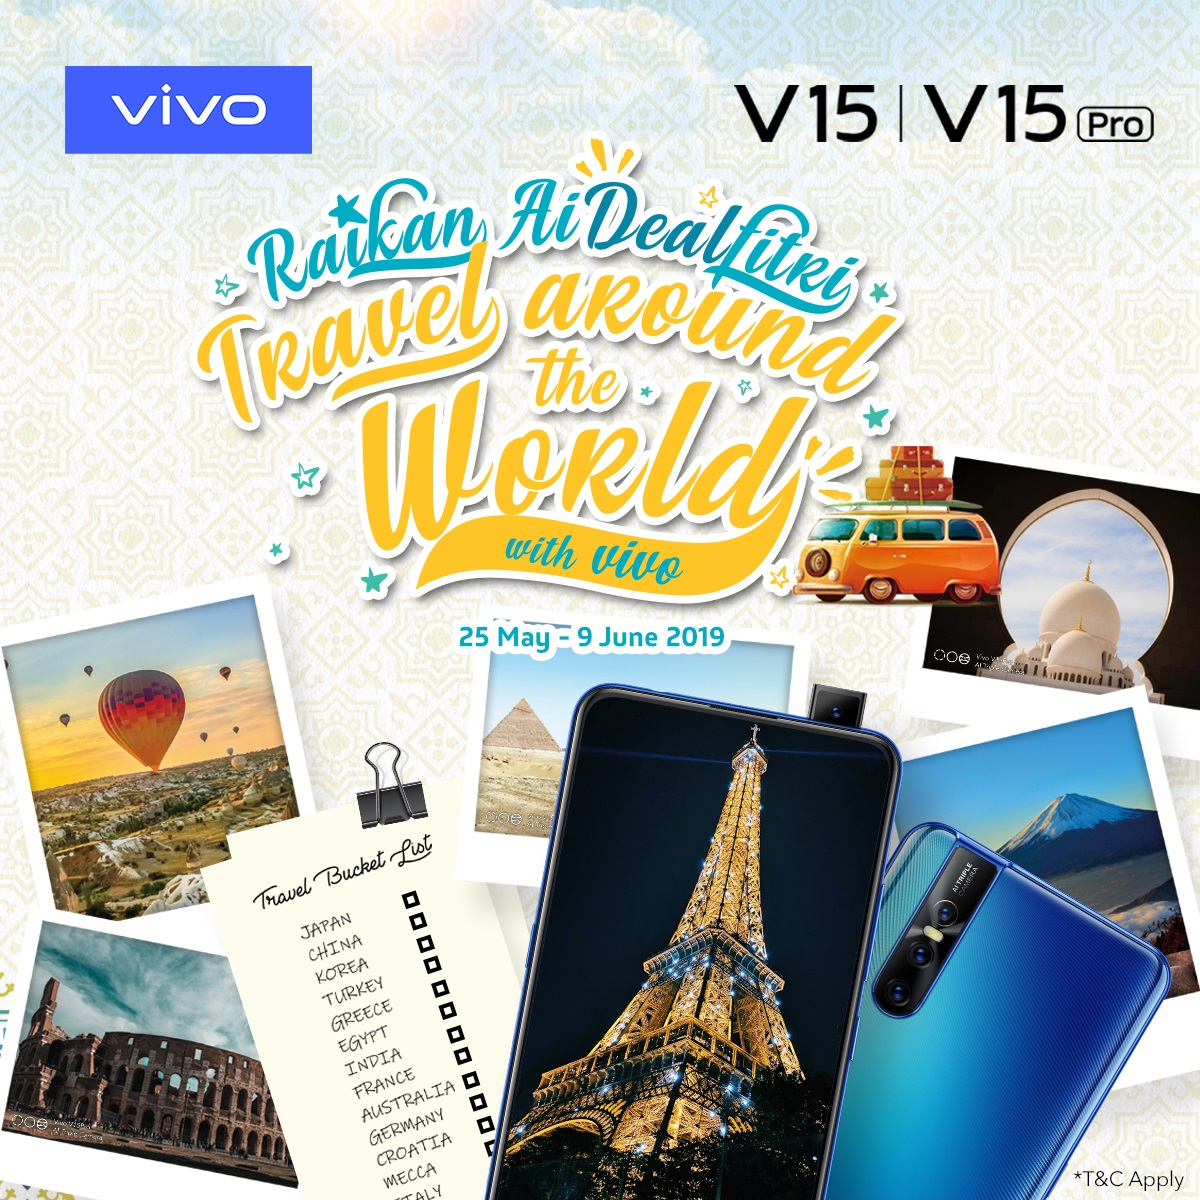 Purchase Any Vivo Smartphone and Stand a Chance to Win a Trip